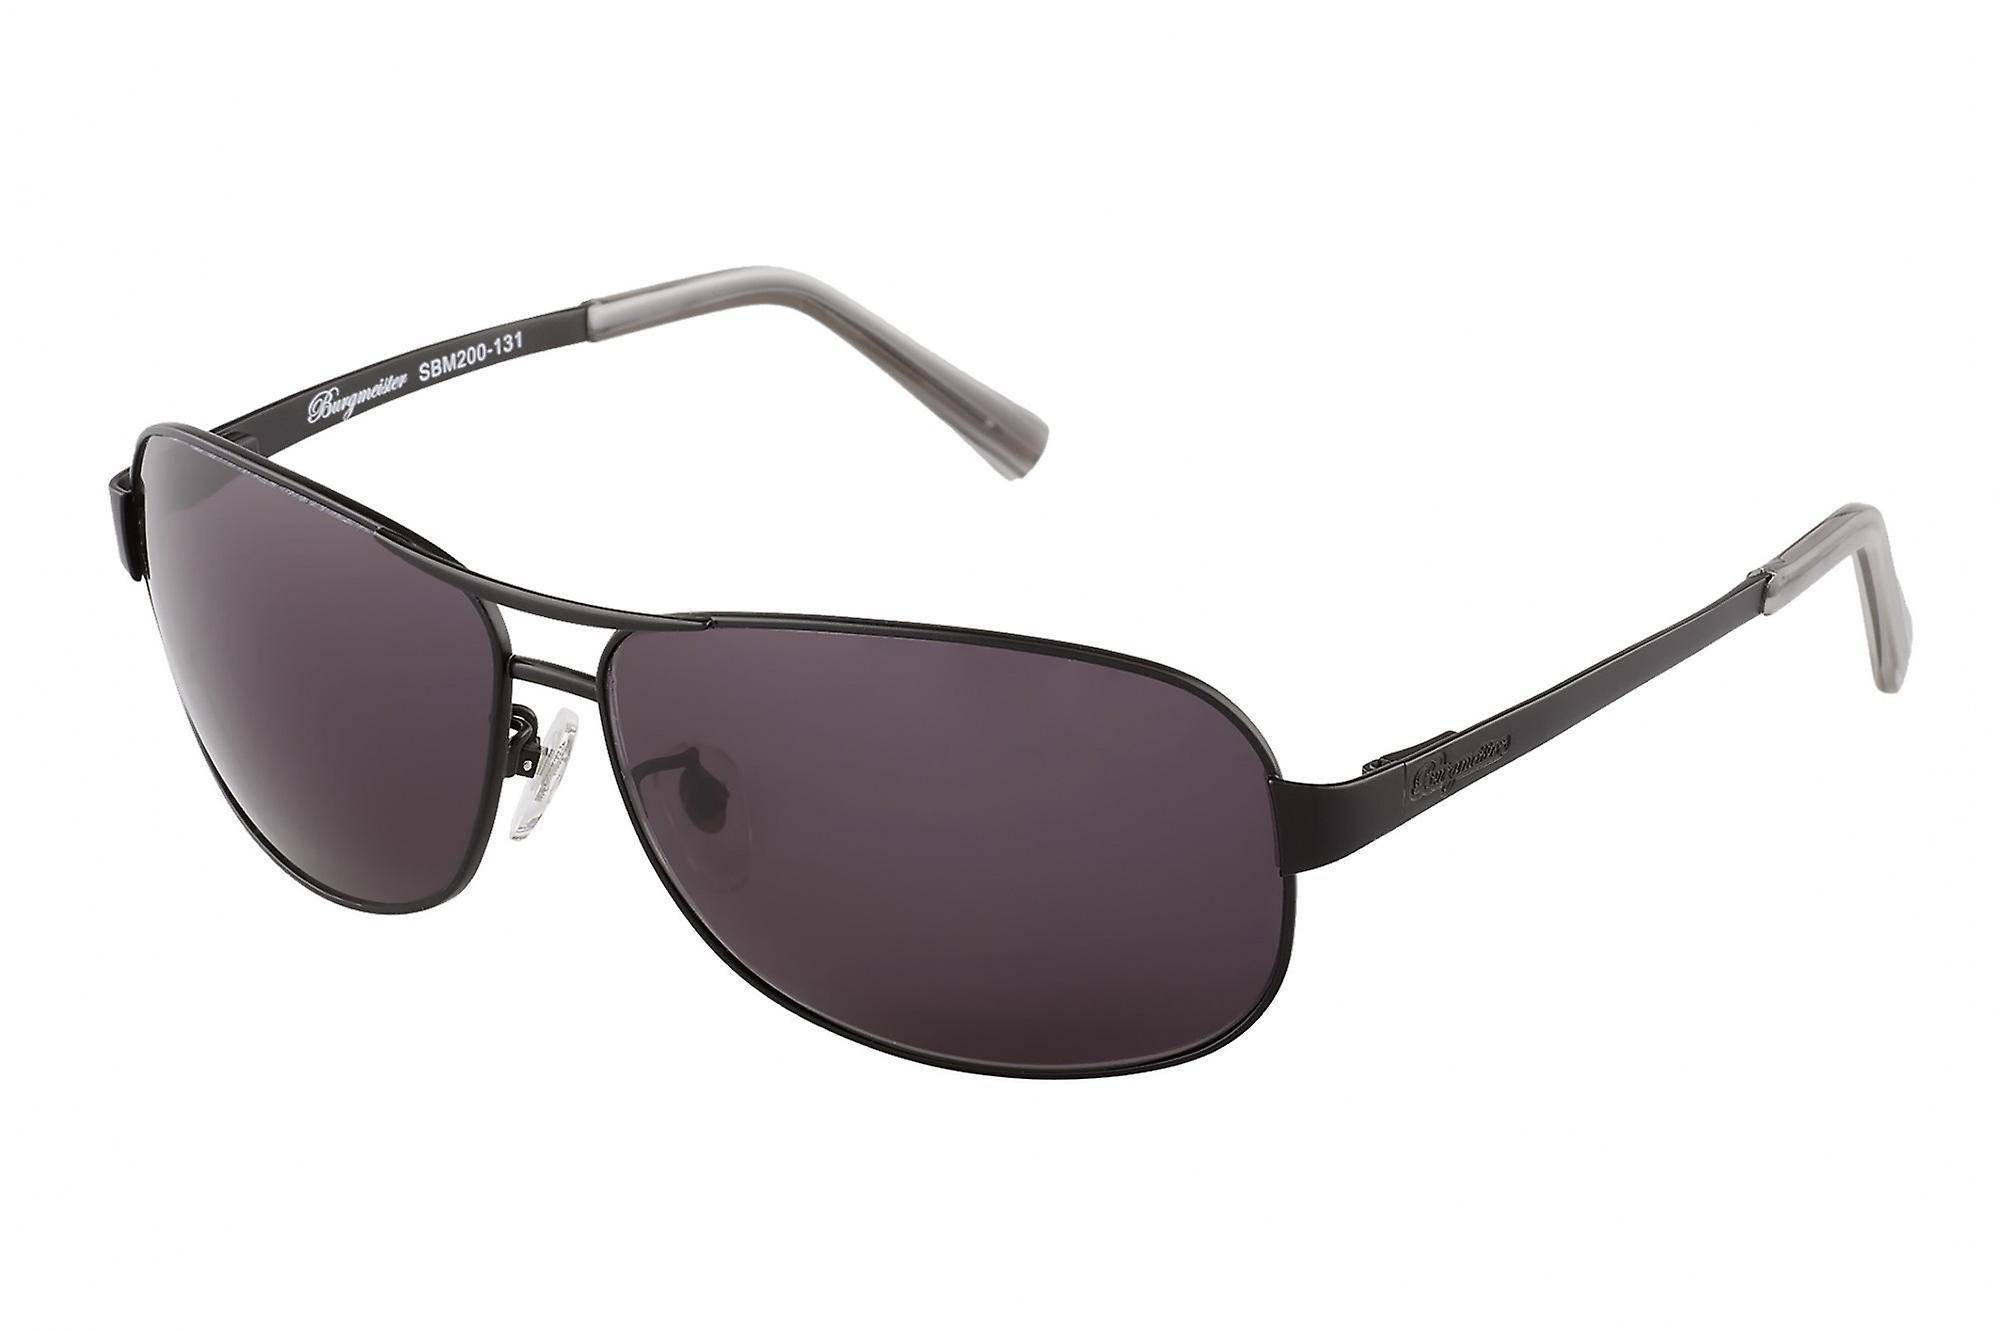 Burgmeister Classic sunglasses for men by Burgmeister with 100% UV protection ...